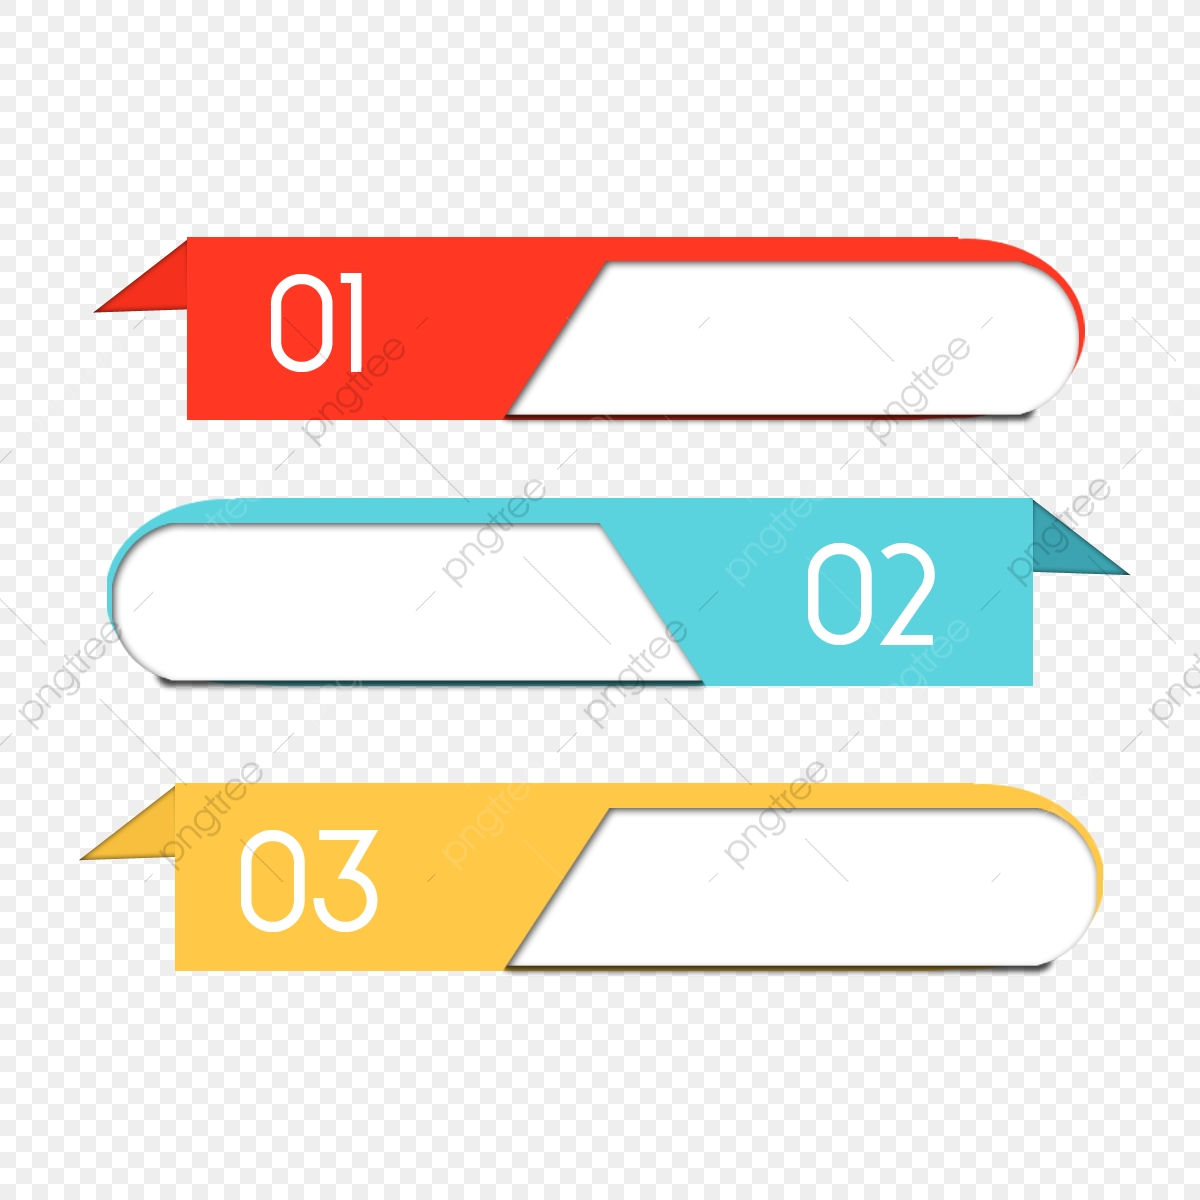 Free Download Infographic Vector Template, Free Infographic.